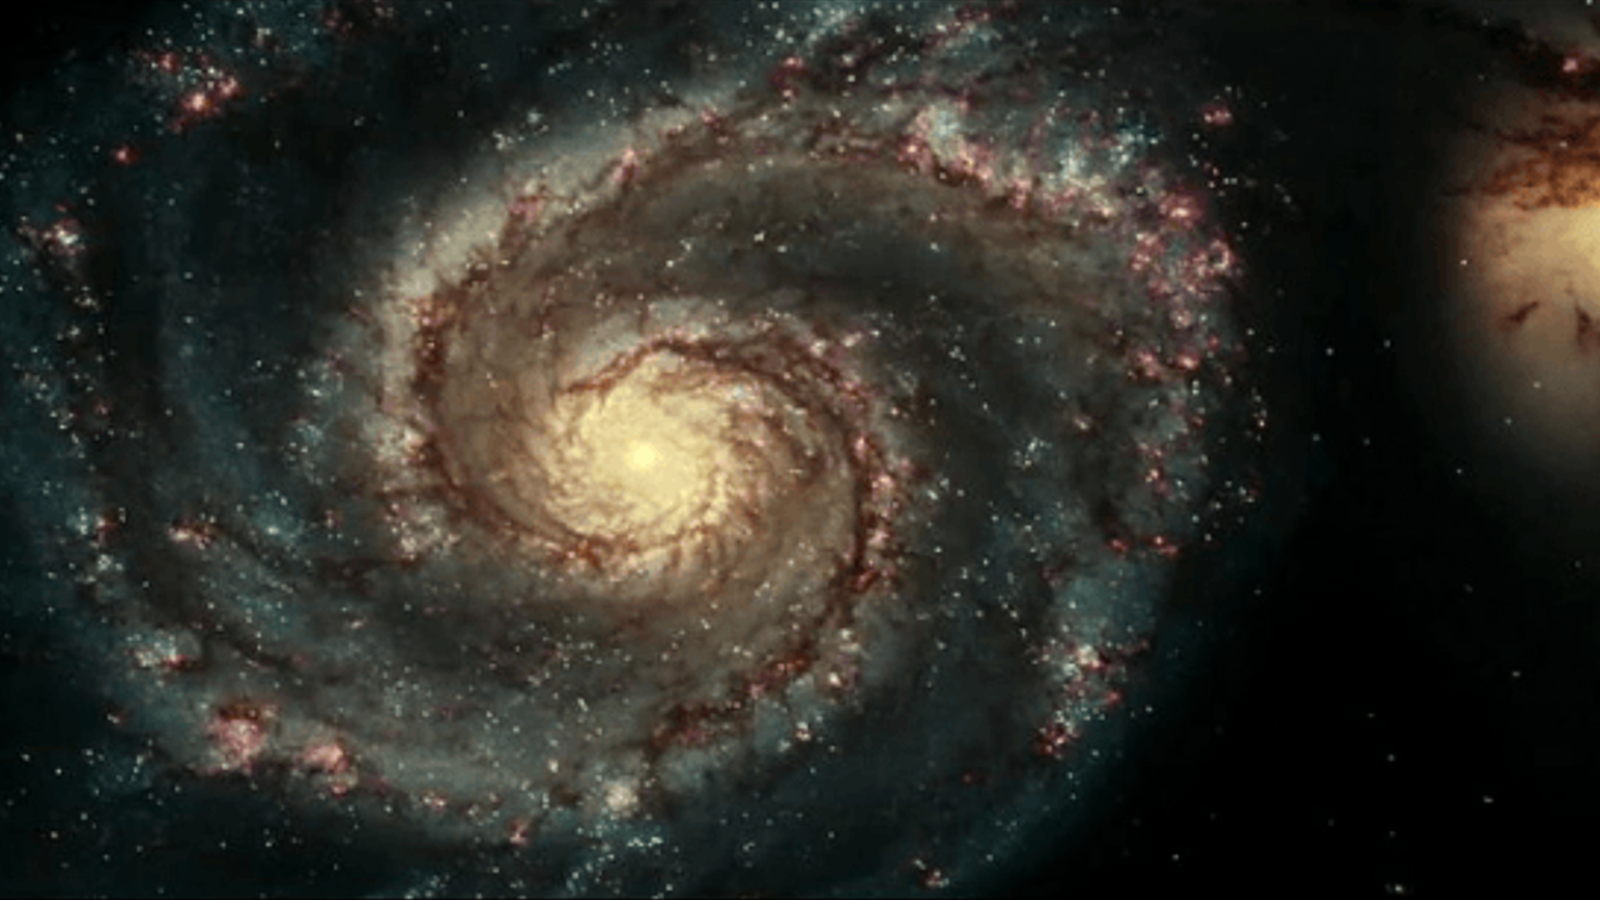 'Voyage of time', de Terence Malick